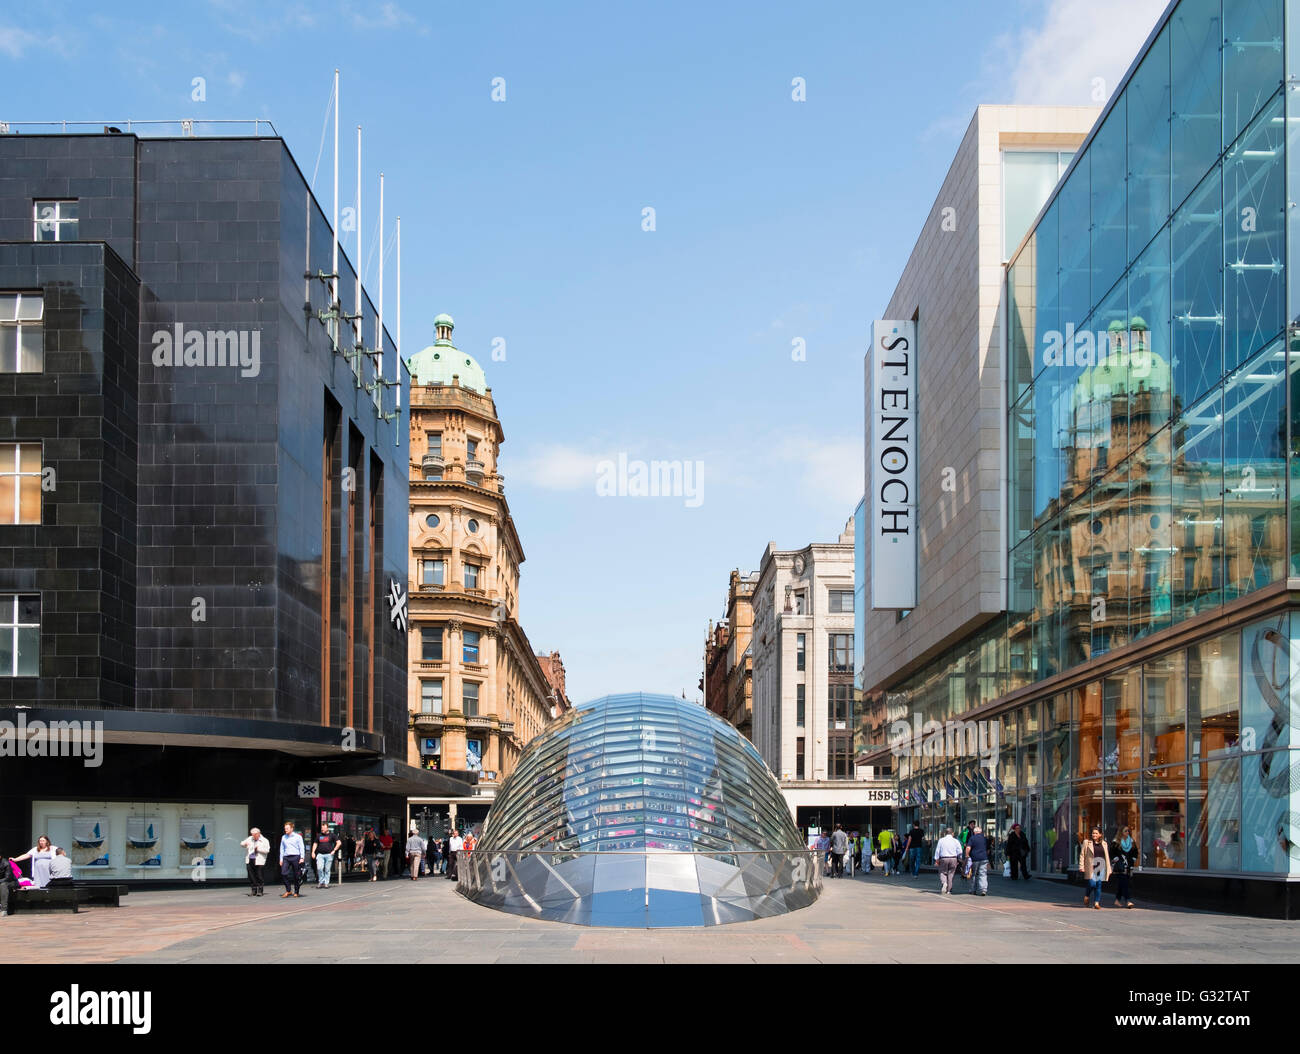 view of entrance to St Enoch station on Glasgow Underground at St Enoch Square in Glasgow, Scotland, United Kingdom - Stock Image